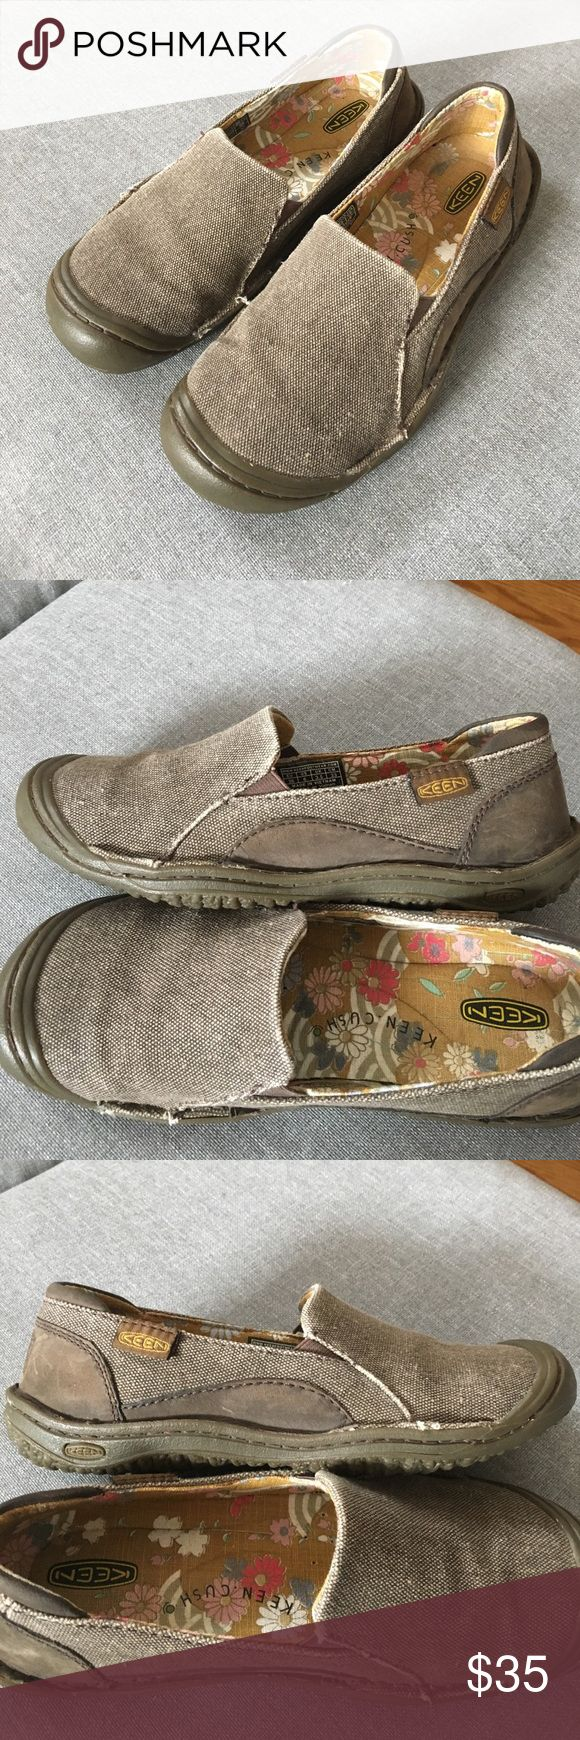 Keen cushion everyday walking shoes! BNWOT Super comfortable and cute. Keen Shoes Mules & Clogs